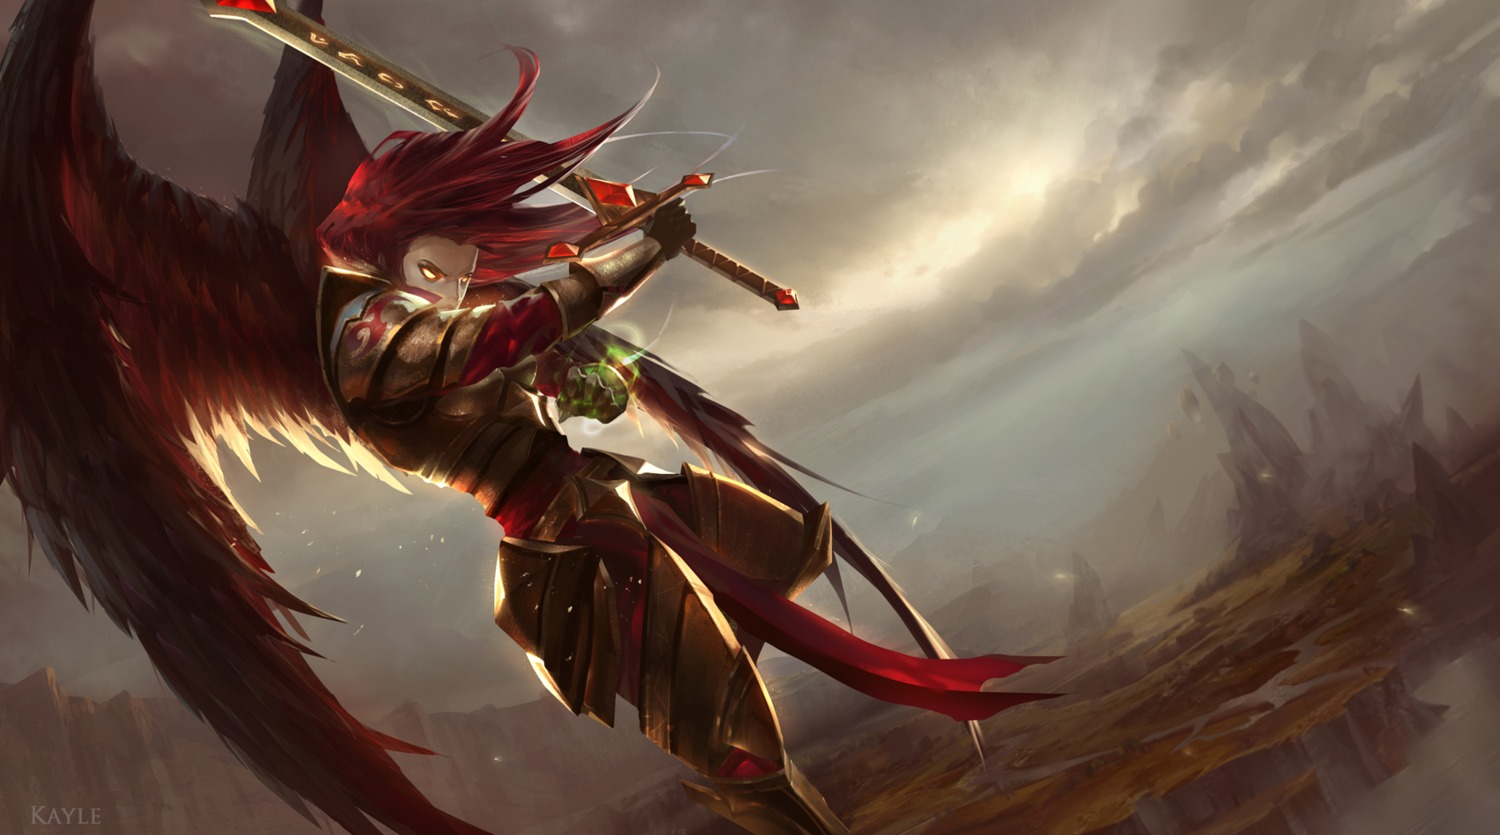 armor cabalfan kayle league_of_legends sword wings